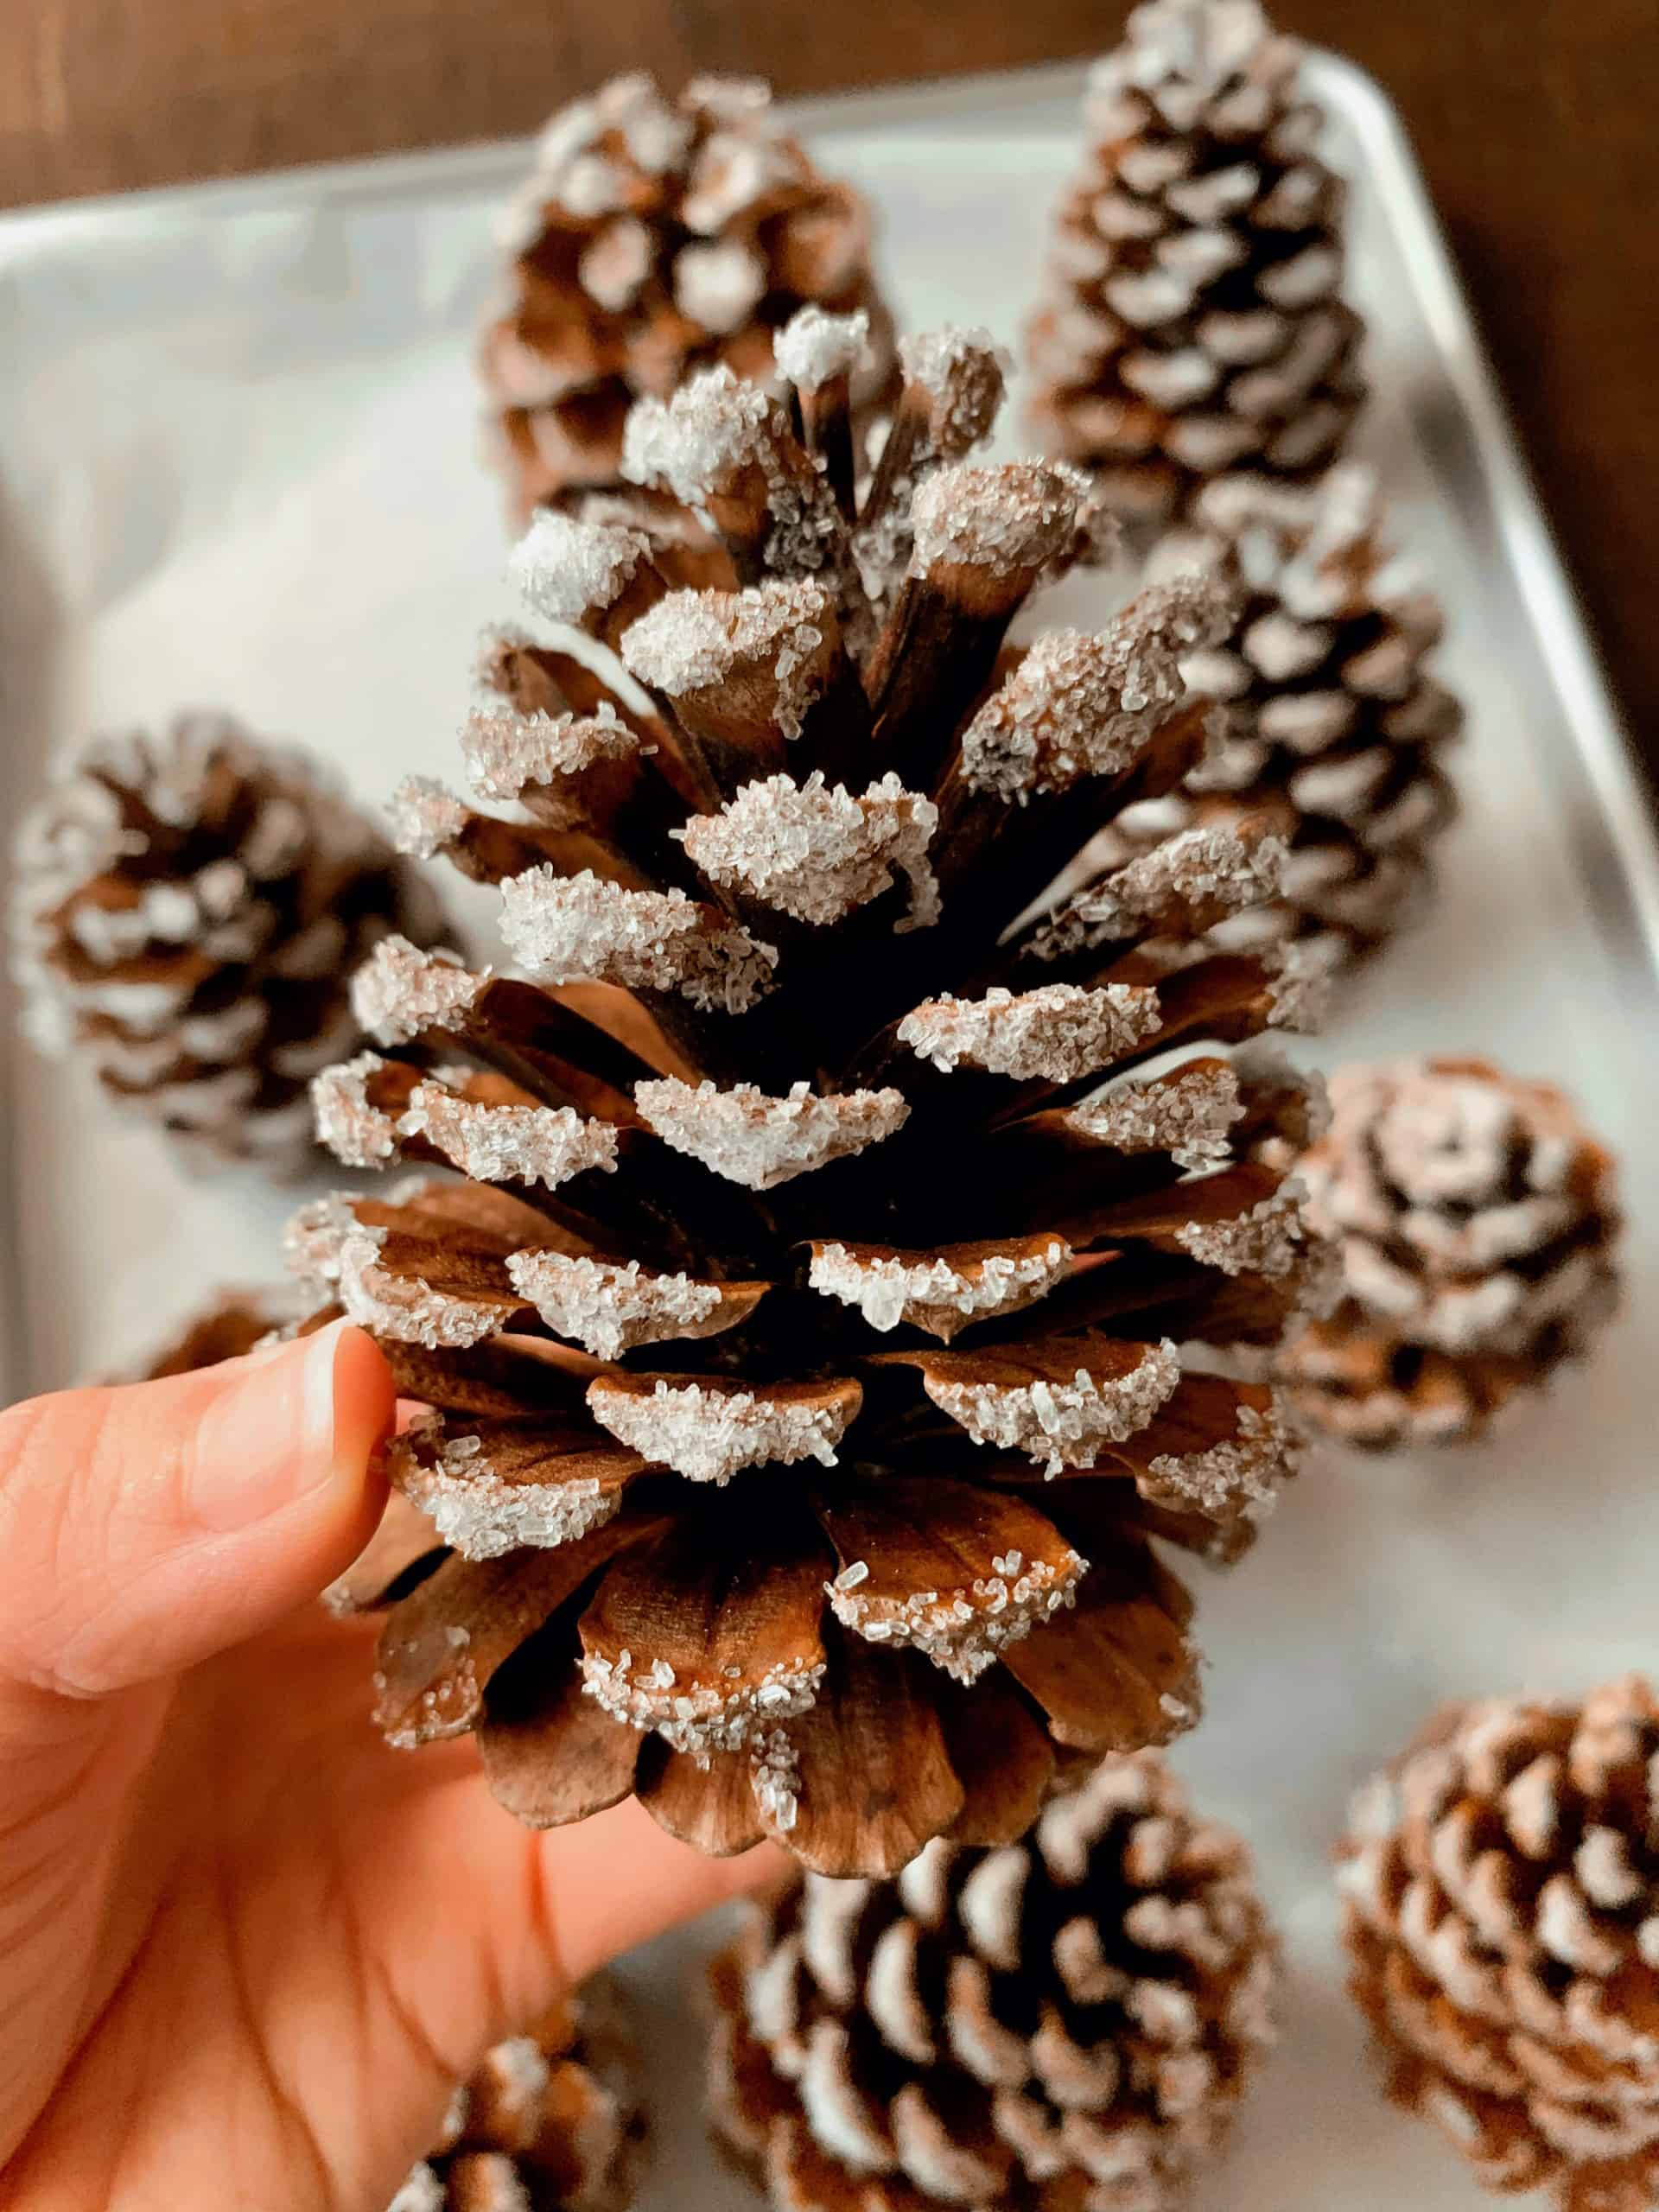 Wondering how to make snow covered pinecones or flocked pinecones for Christmas? Check out my Easiest DIY Snow Covered Pinecones tutorial using Epsom salt, Mod Podge glue, and pinecones. This DIY pinecone Christmas craft is easy, affordable, and only takes 5 minutes! #pinecones #diy #christmascraft